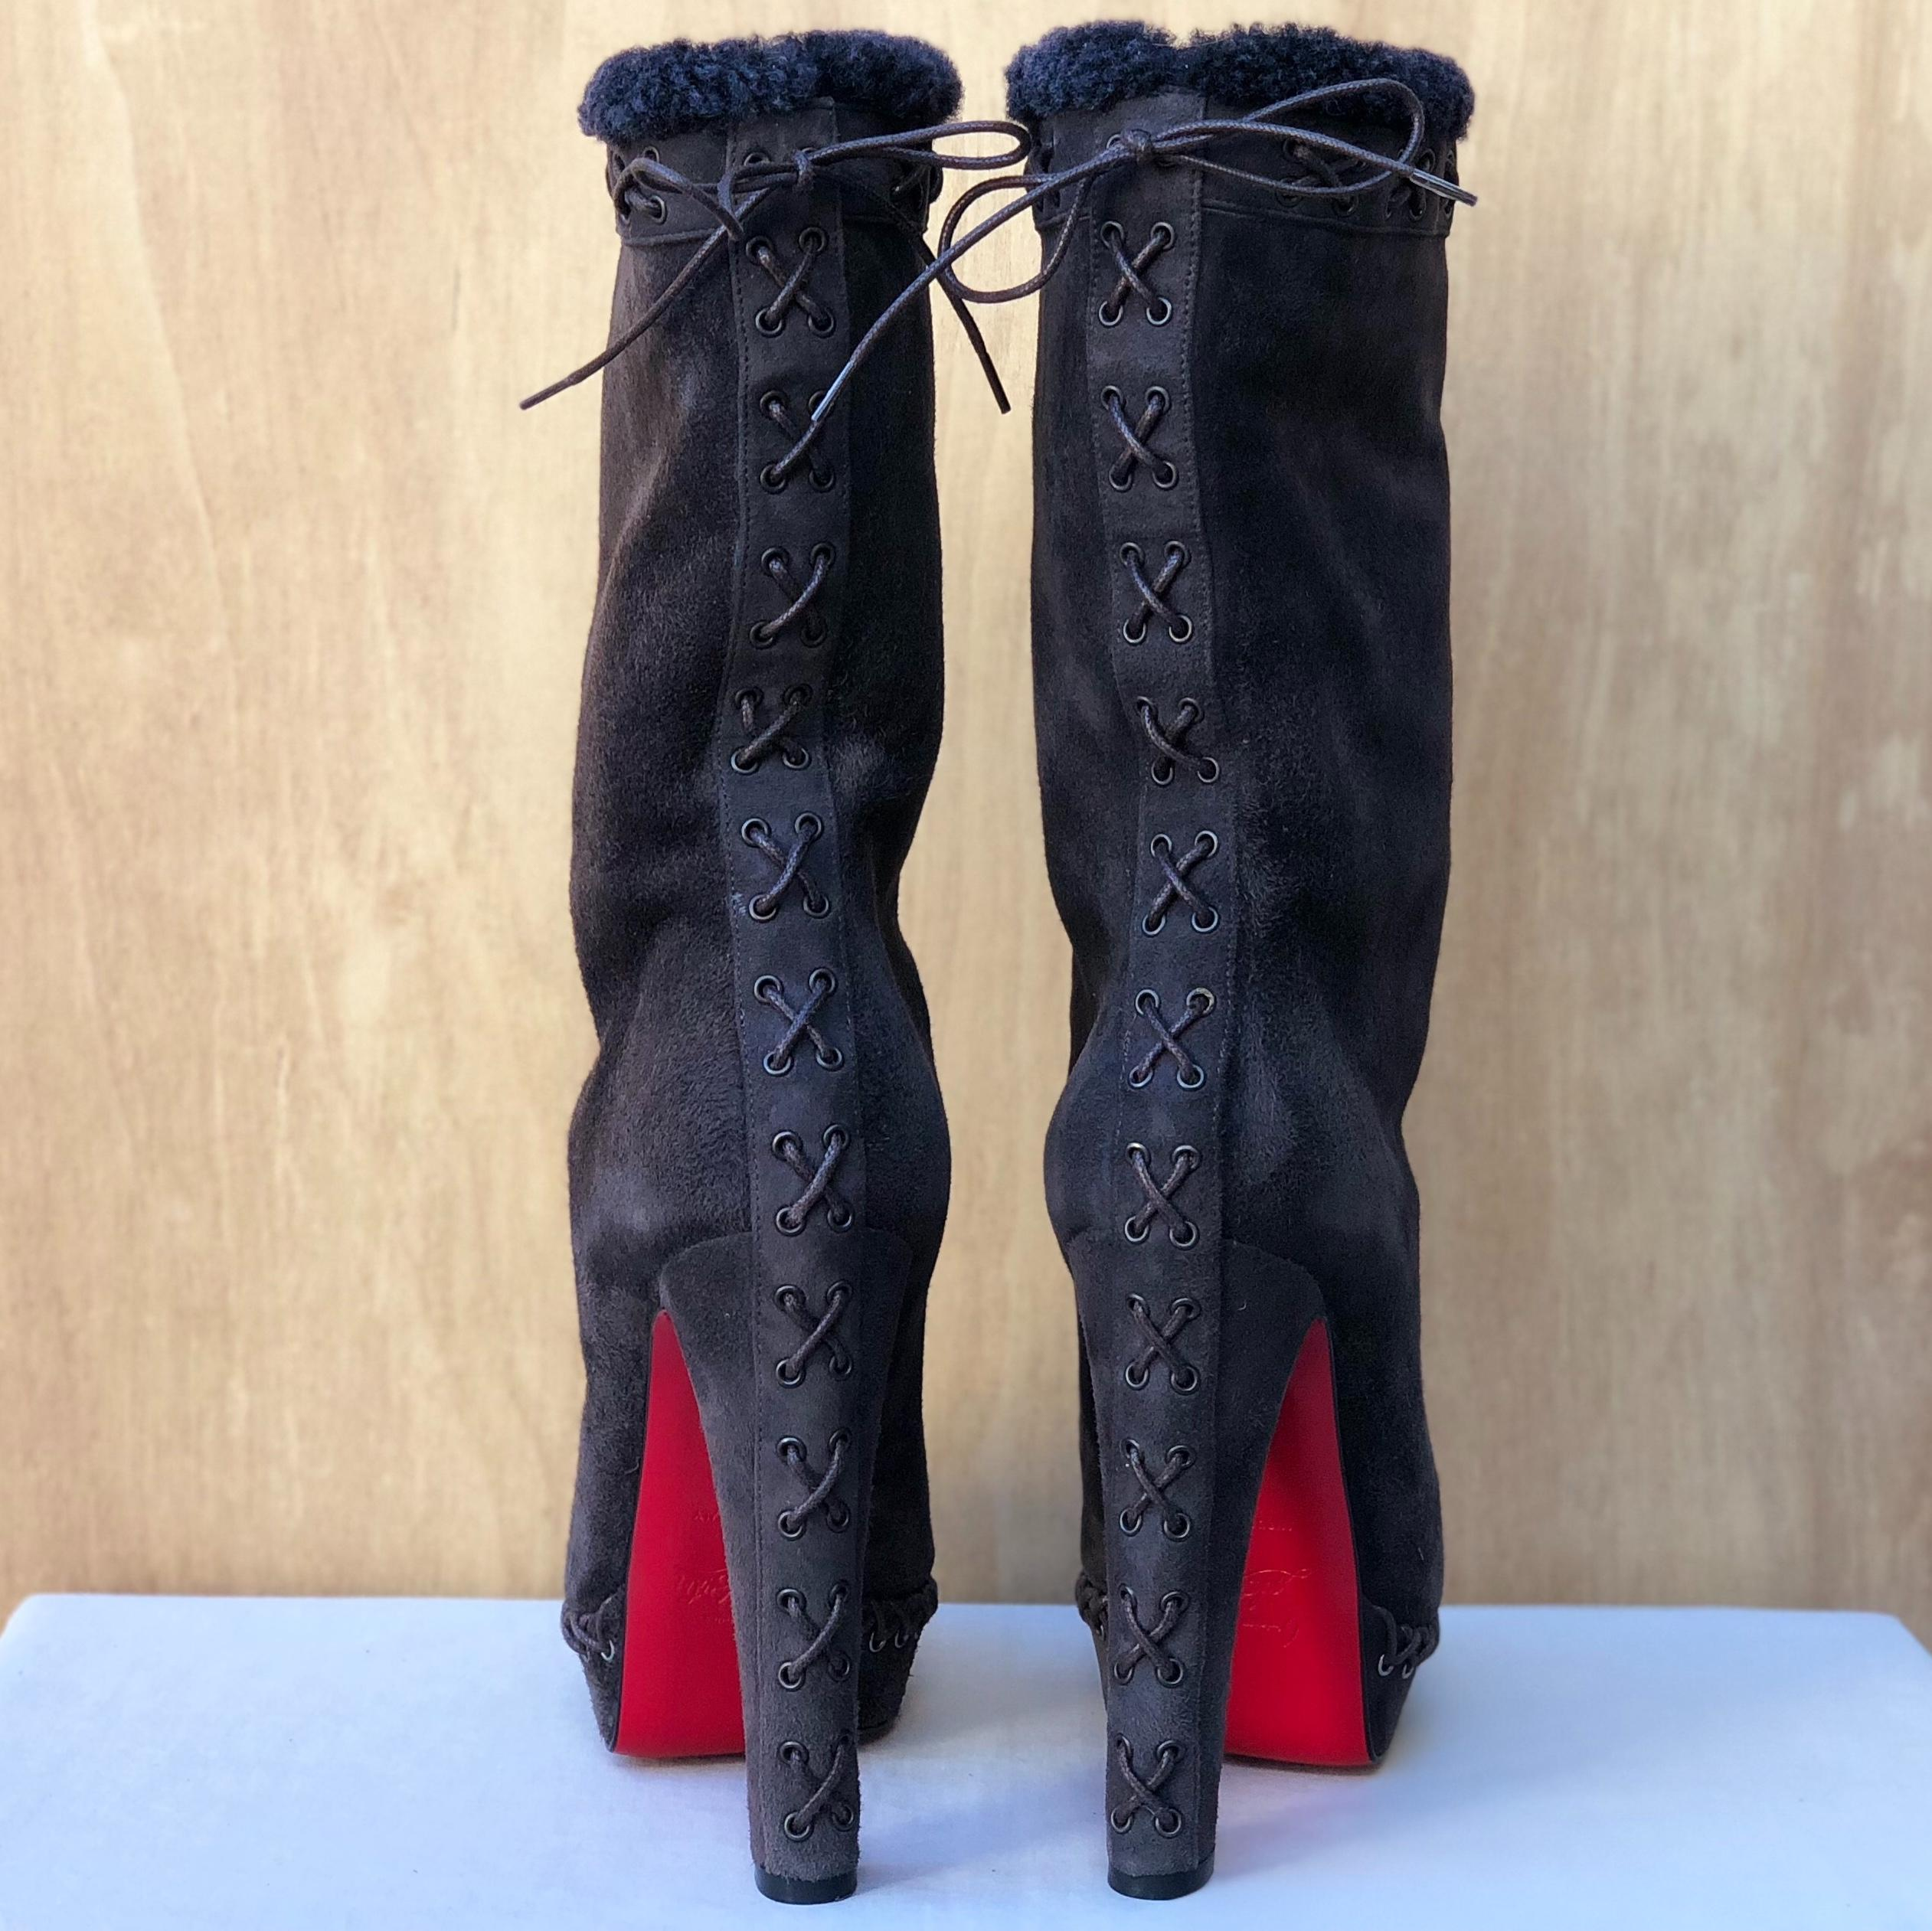 7c9b0c0aed93 ... Christian Christian Christian Louboutin Brown Gray Step N Roll 140  Suede Shearling Lined Platform Boots  ...